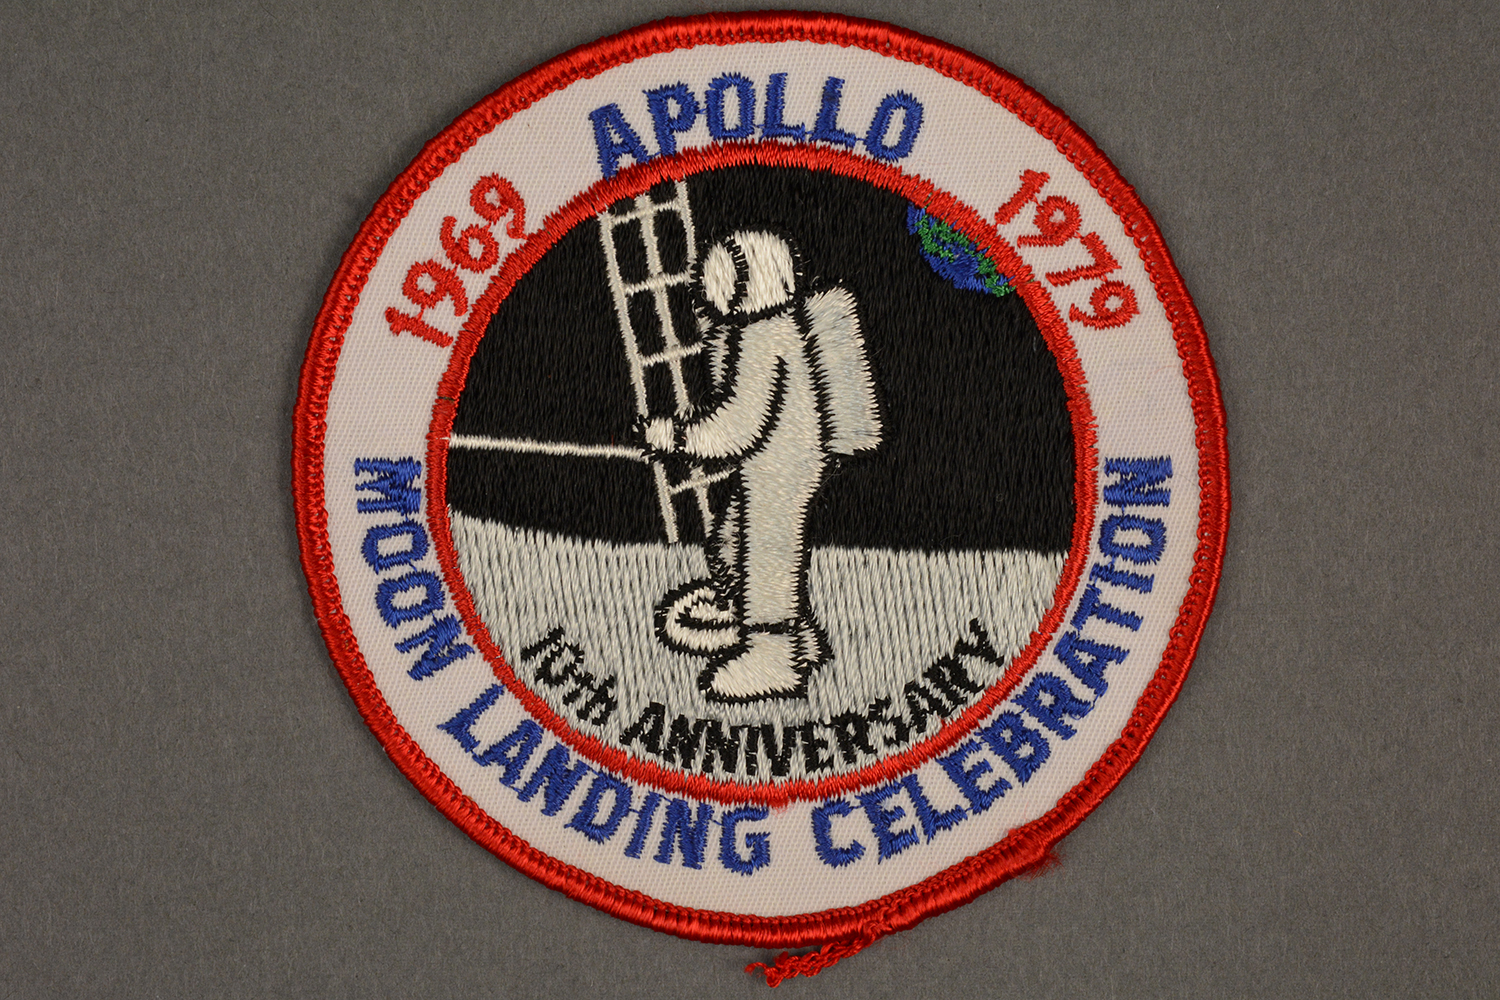 10th Anniversary patch from Apollo Moon celebration, 1979.